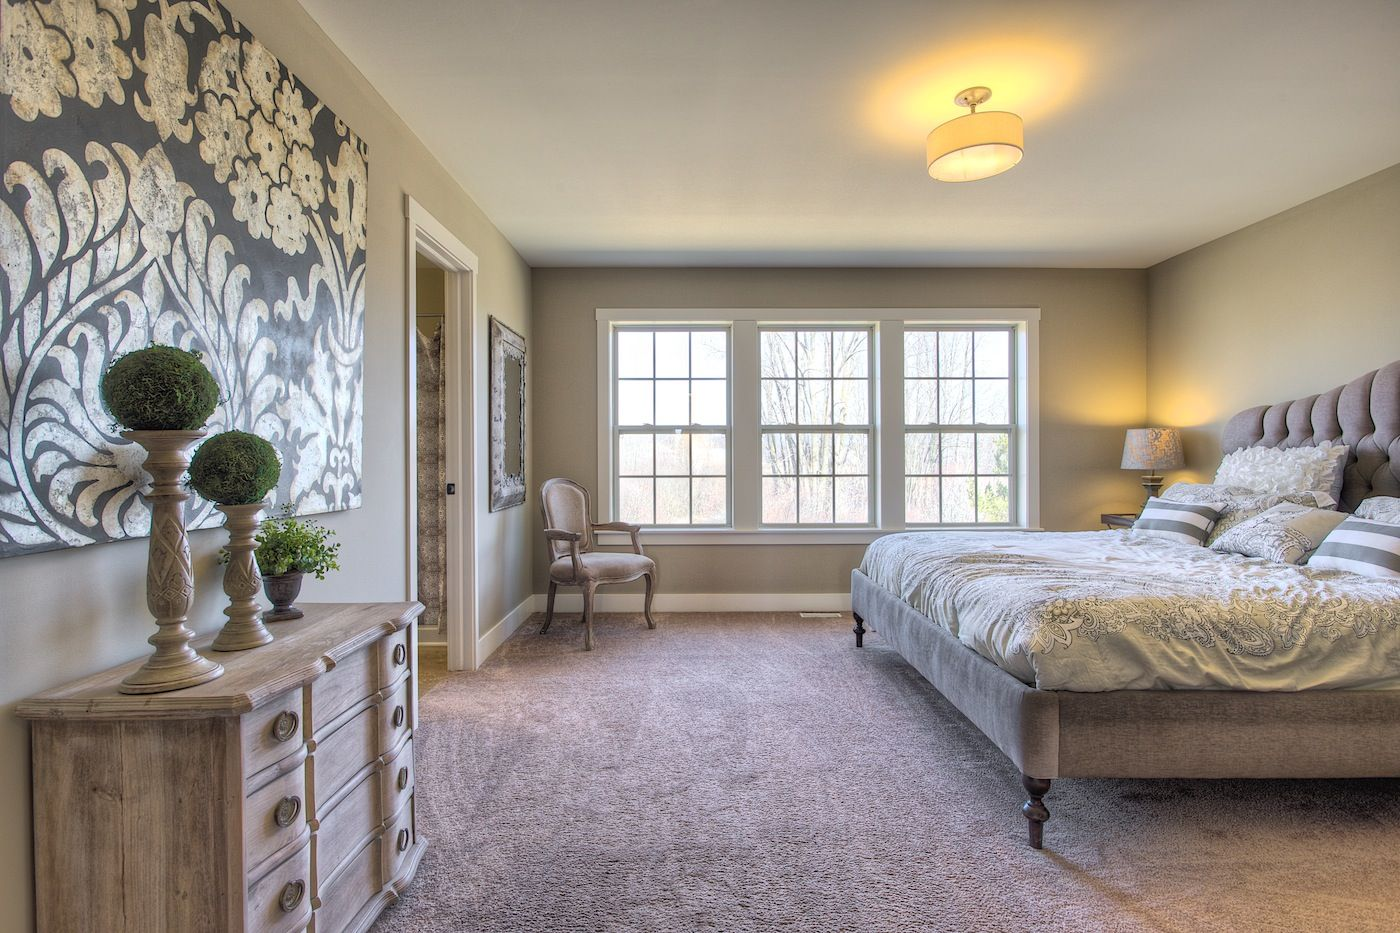 Bedroom featured in the Traditions 2800 V8.0b By Allen Edwin Homes in Flint, MI